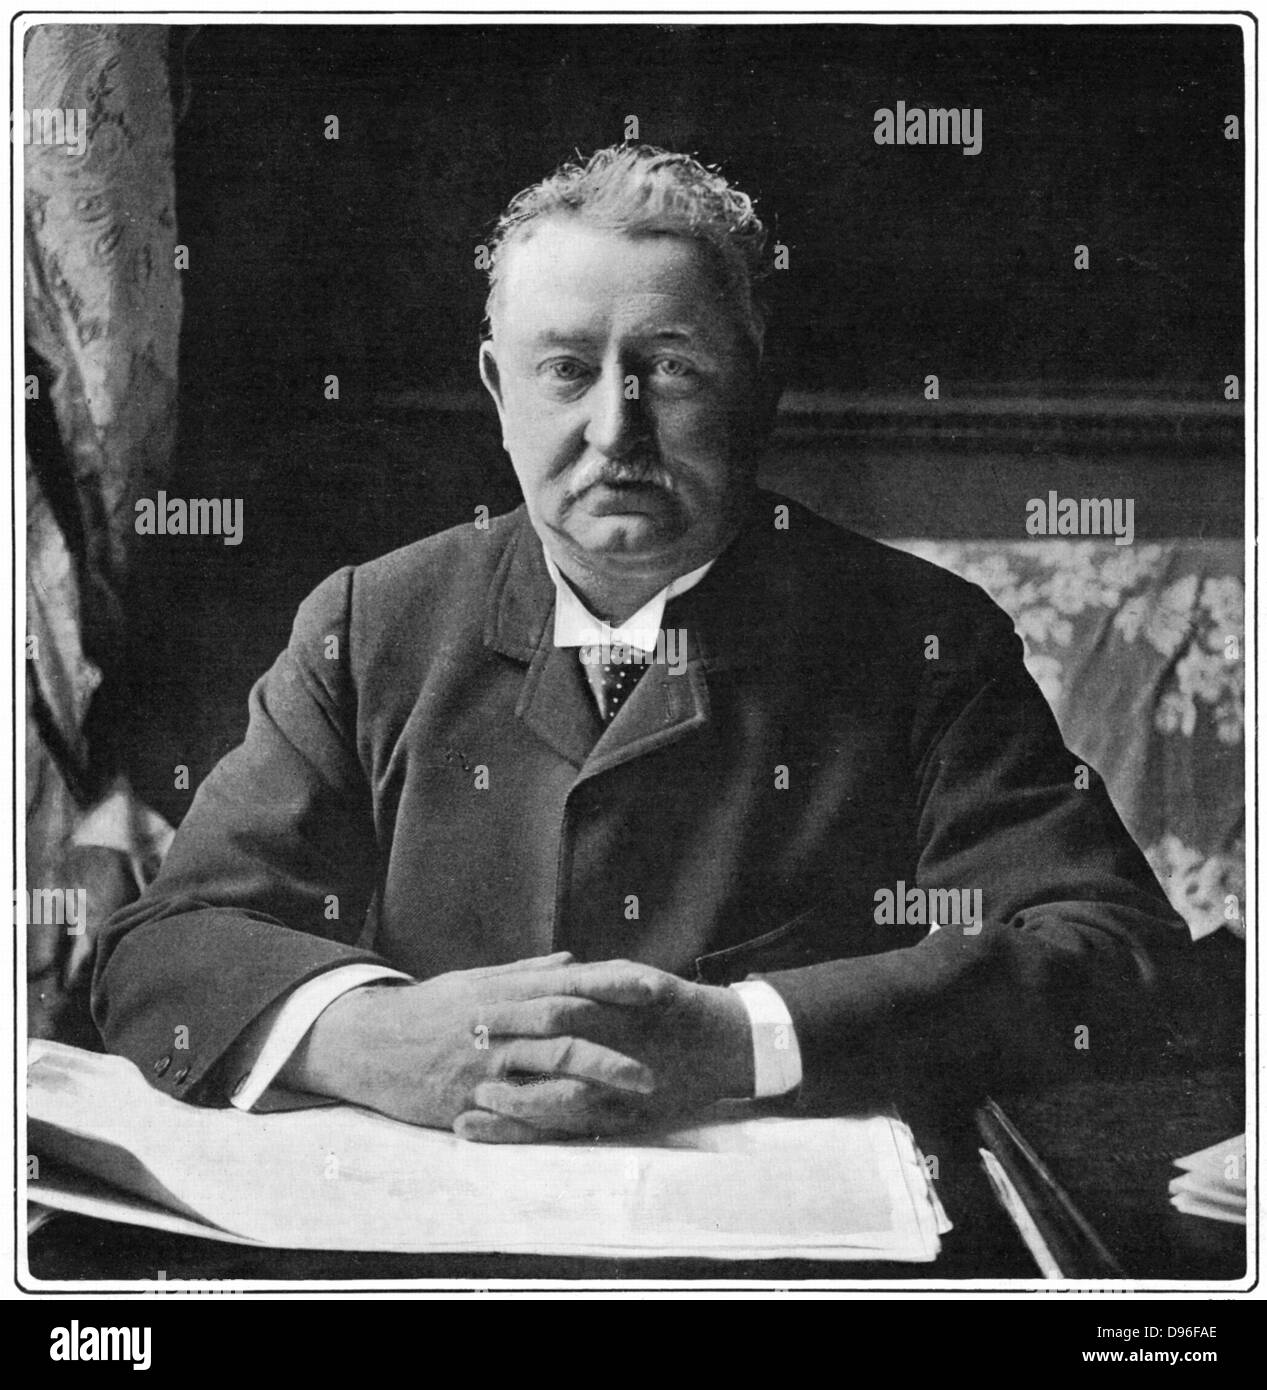 Cecil John Rhodes(1852-1902) English-born South African statesman. Photographic portrait published 1901 - Stock Image